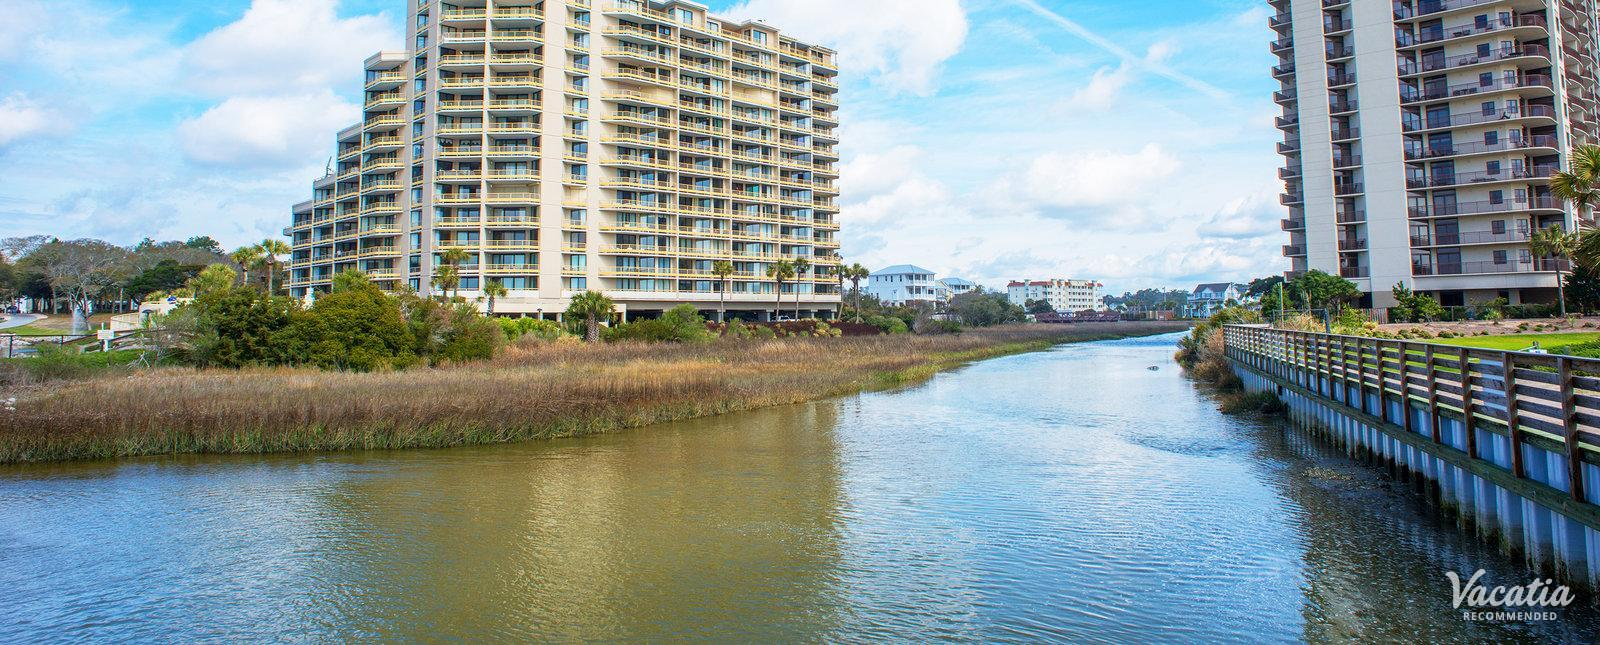 Ocean Creek Resort condo near river